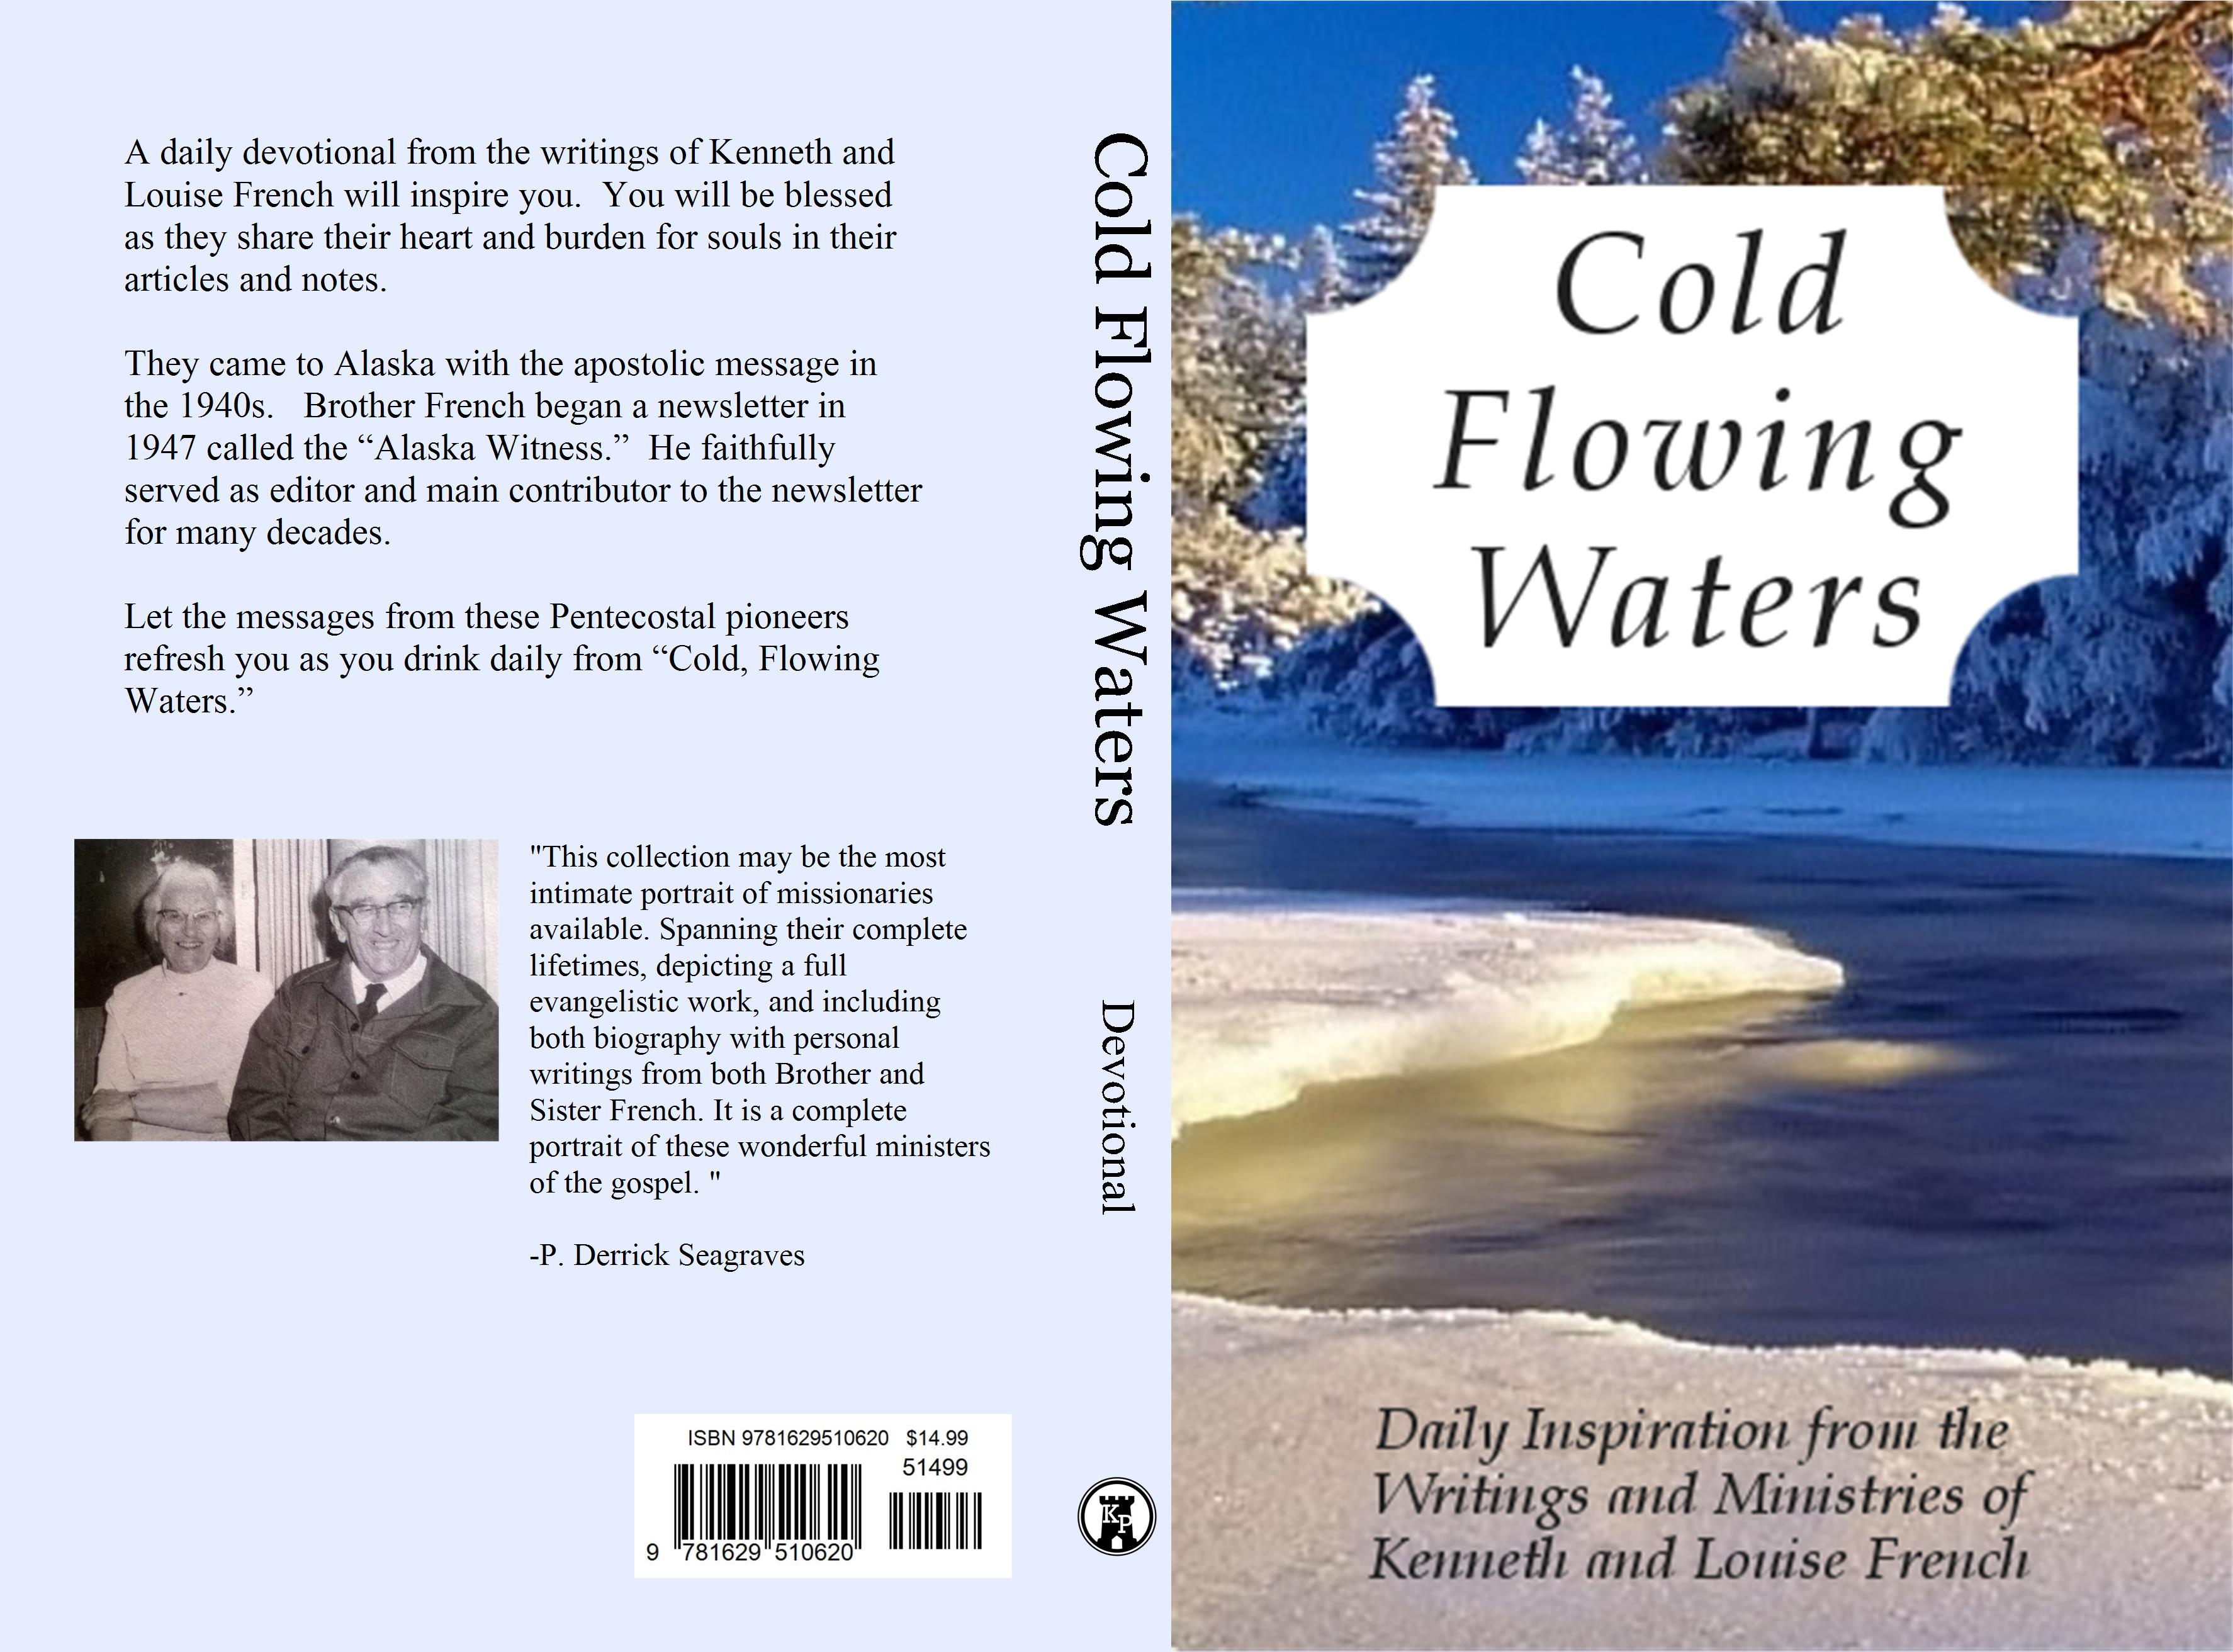 Cold Flowing Waters cover image